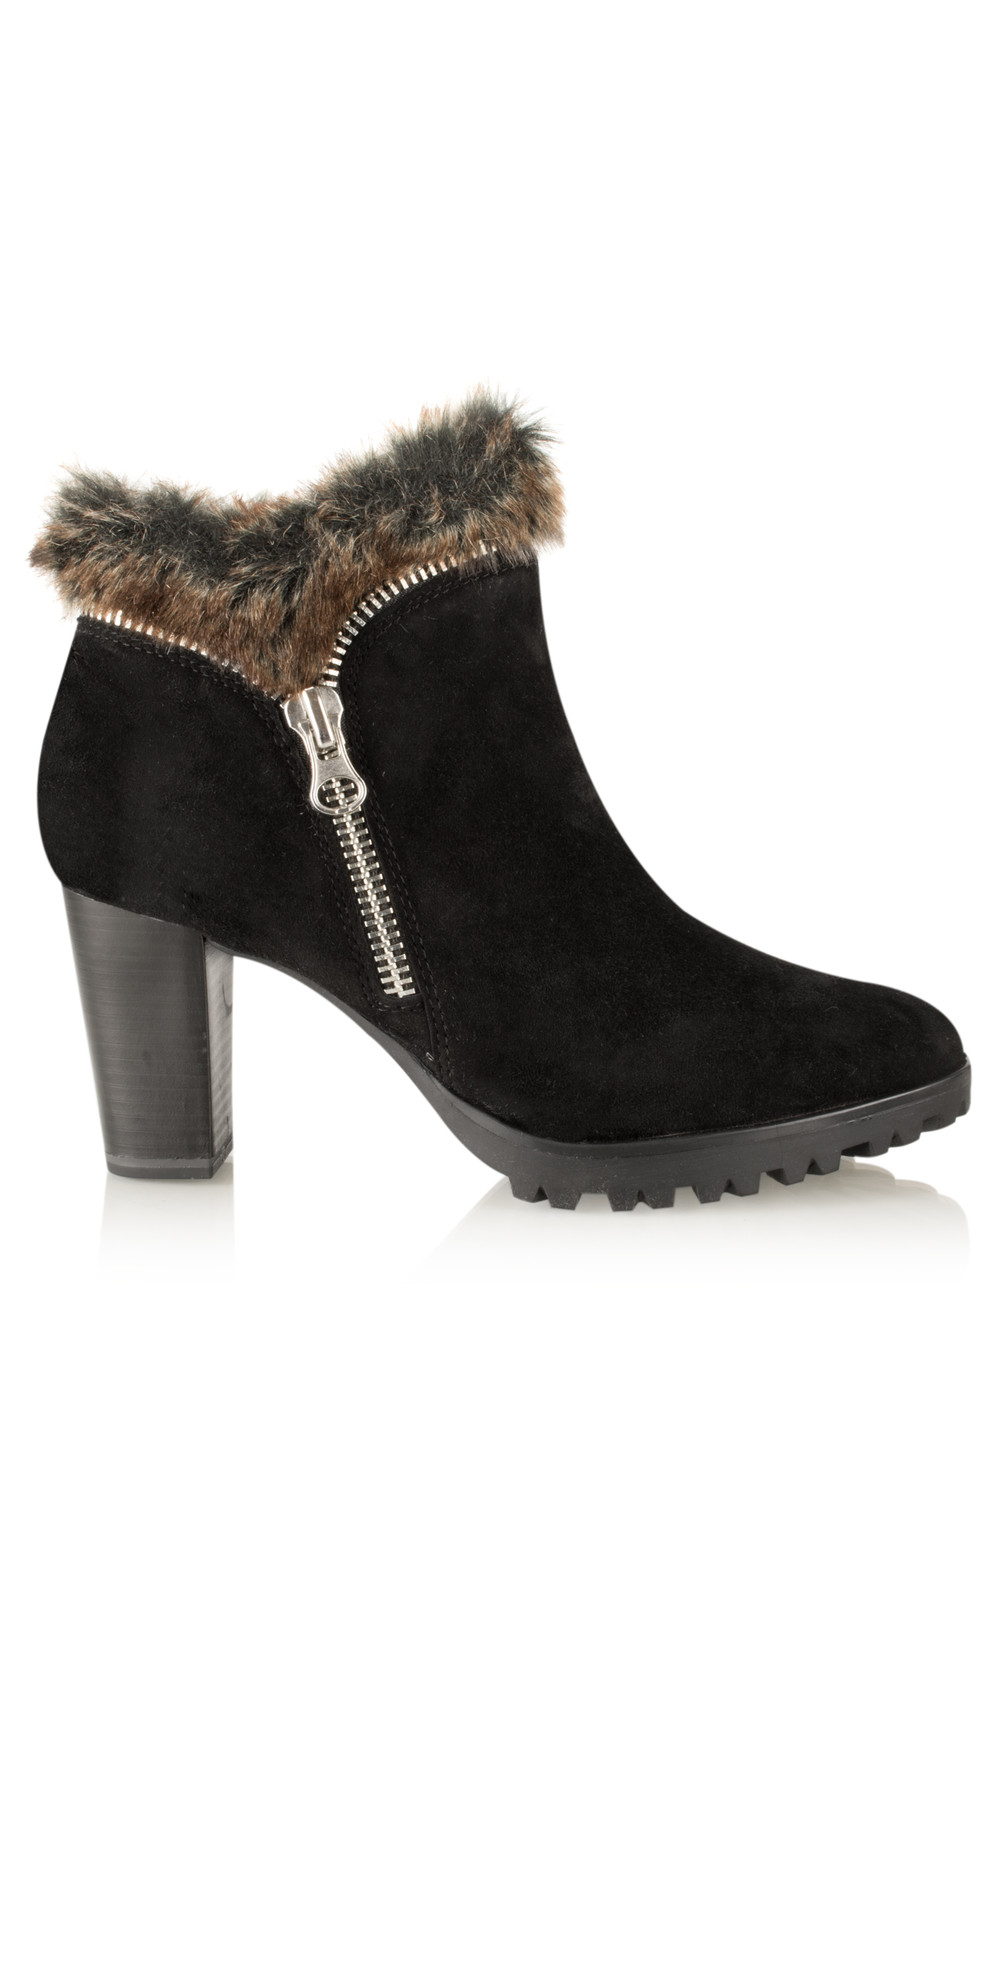 cee6e375f4b Black Suede Fur Trim Ankle Boot